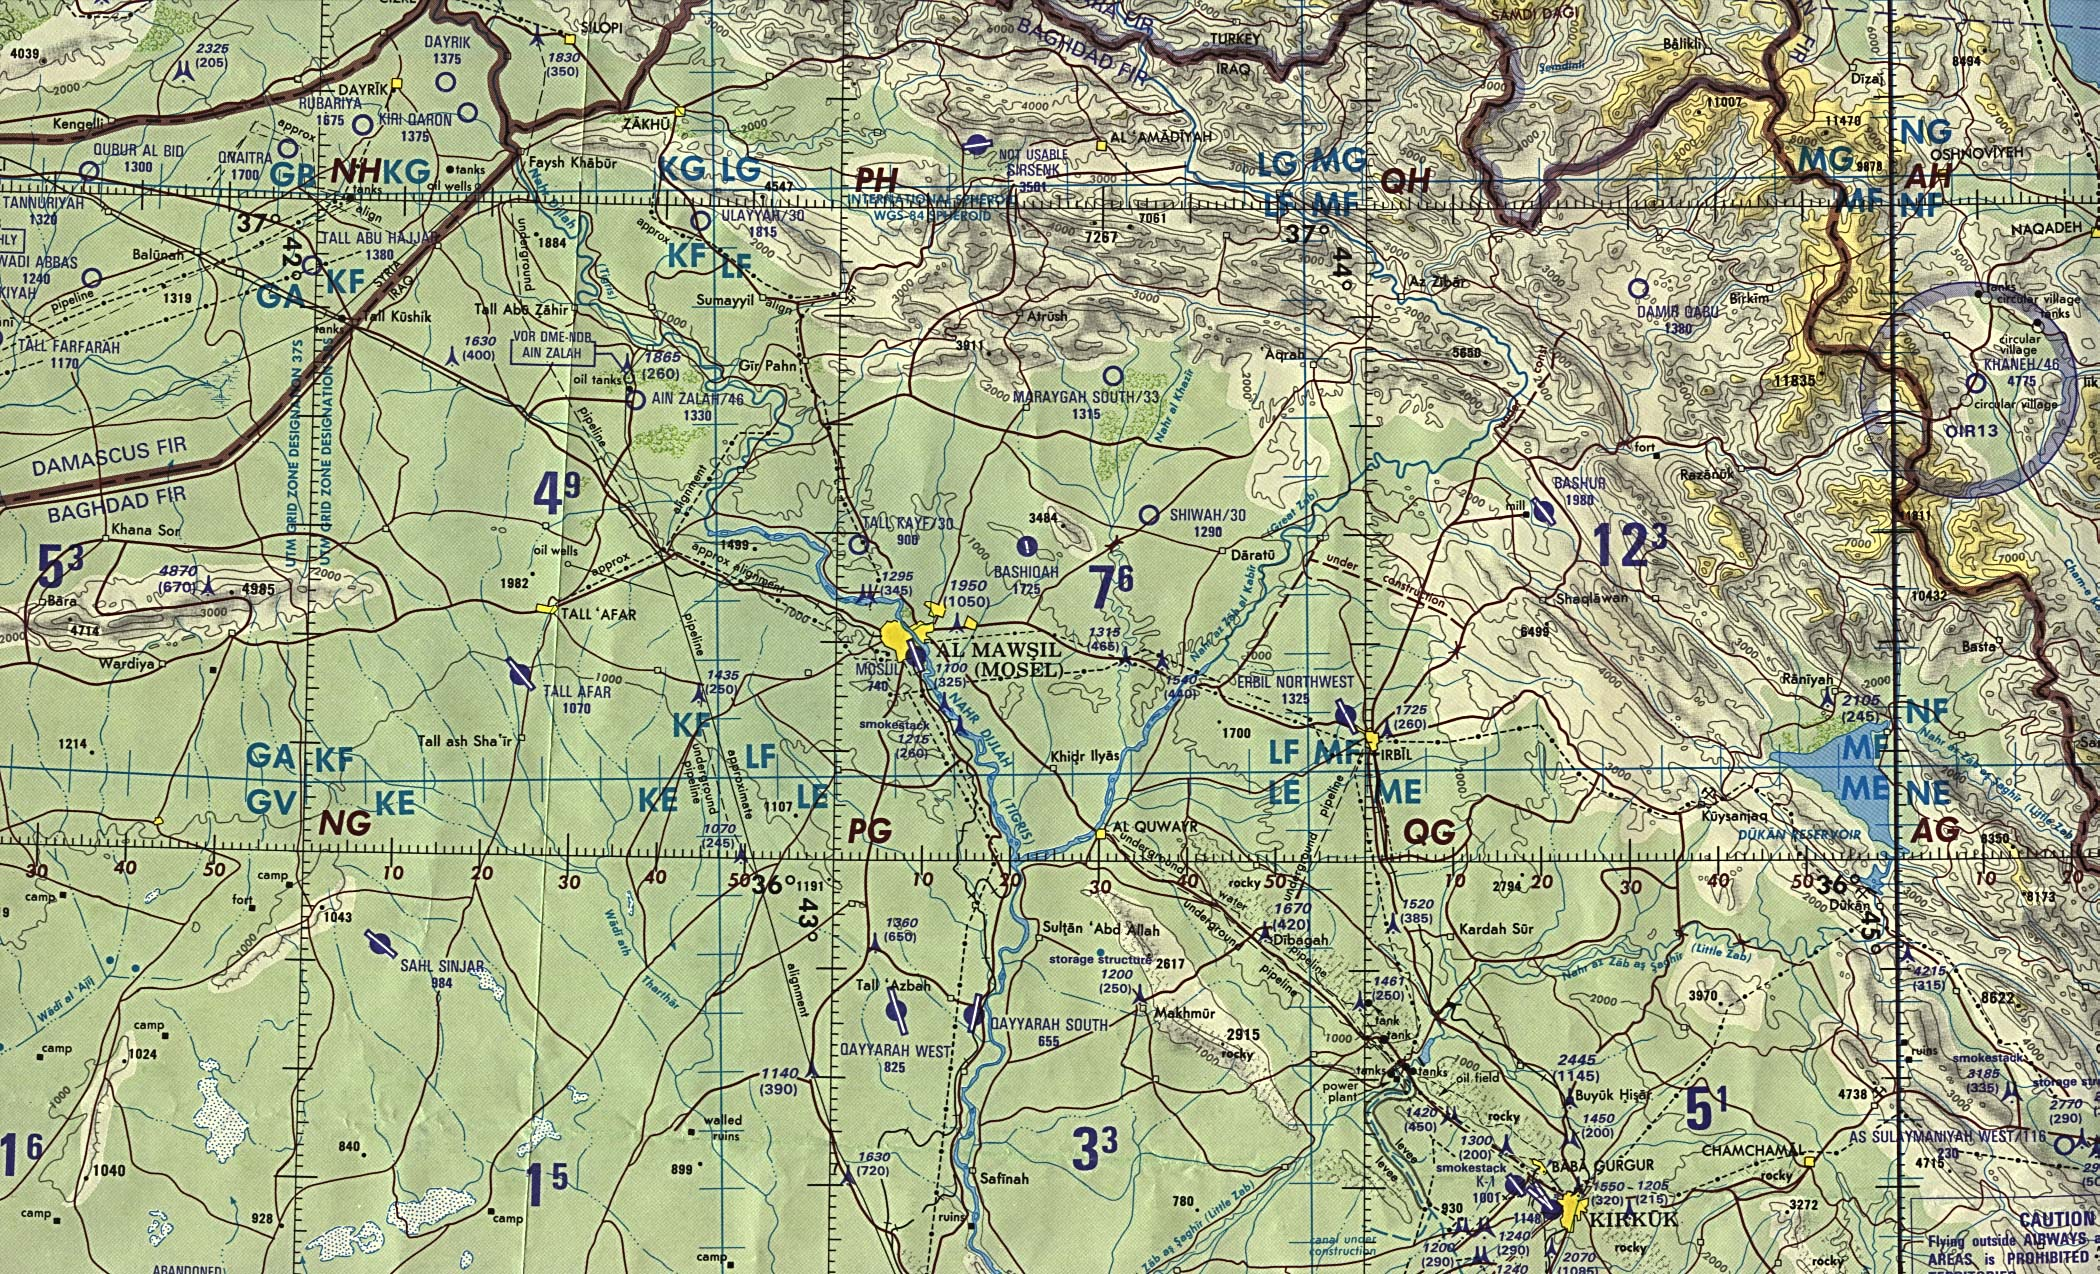 Map Of Iraq Northern Iraq (operational navigation chart) original scale 1:1,000,000 Portion of Defense Mapping Agency ONC G-4 1990 (1MB) Not for navigational use